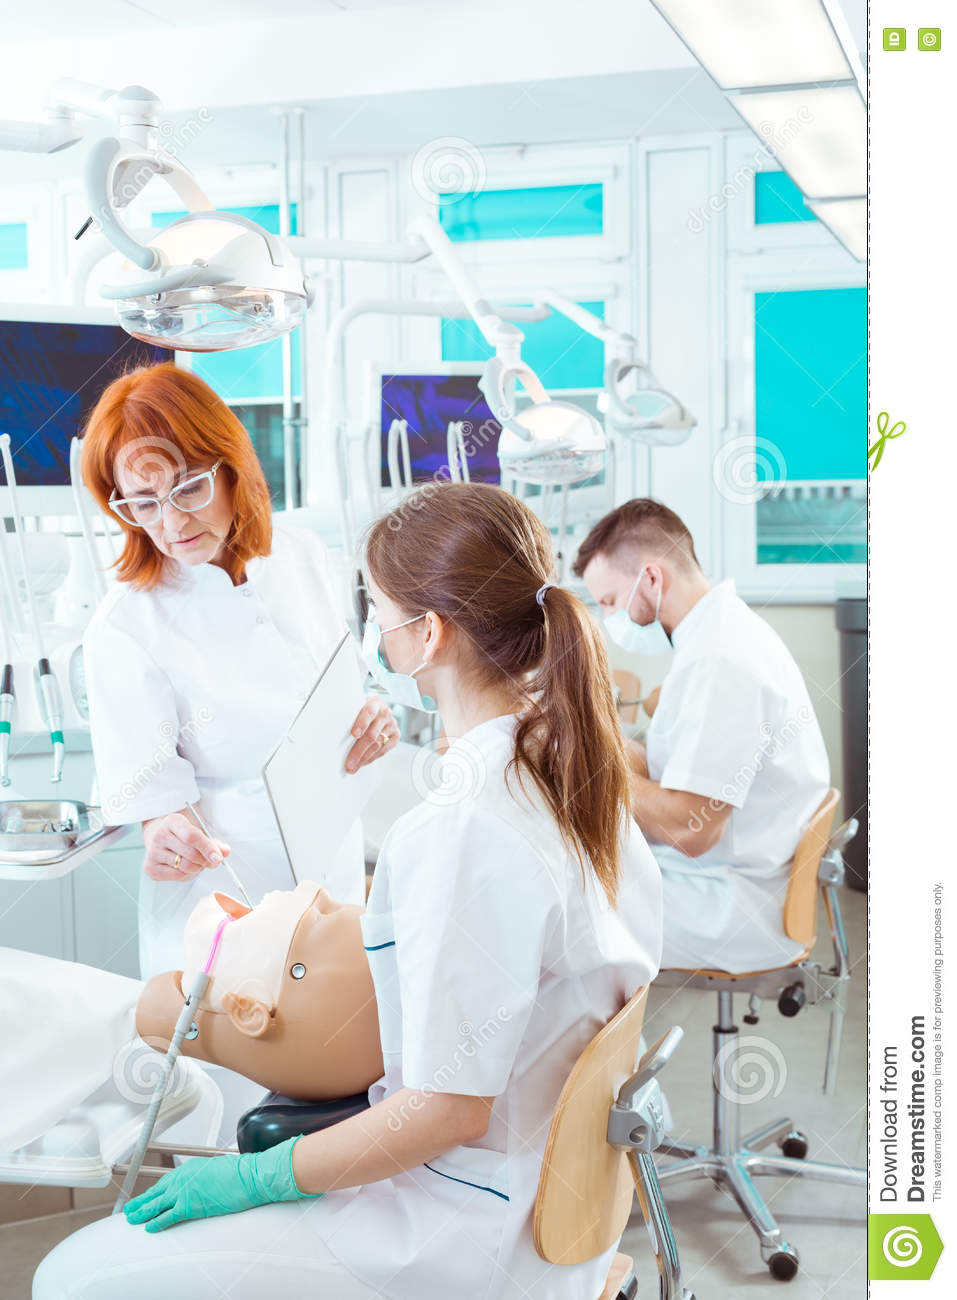 Minor remarks to a well-performed dental procedure